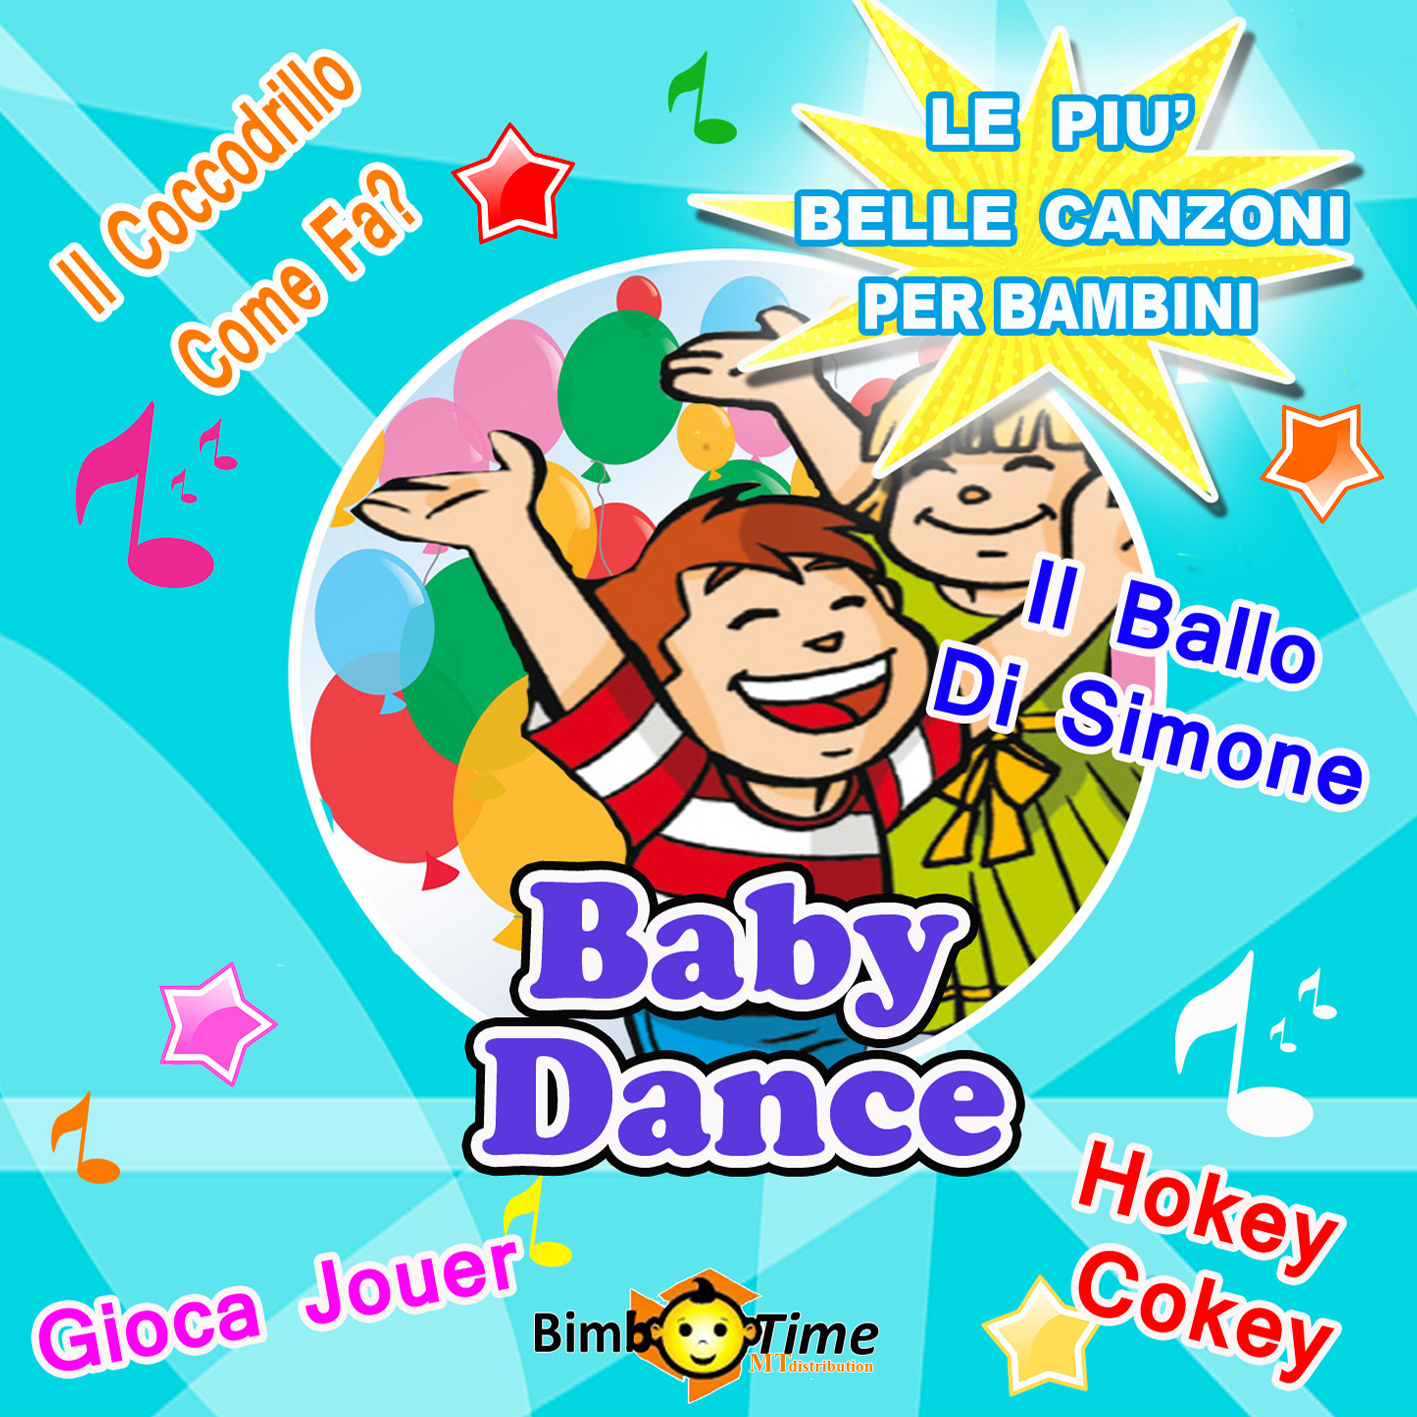 5 - Baby Dance - Gioca Jouer, Il Ballo Di Simone, Il Ballo Del Qua Qua, And Other 12 Hits